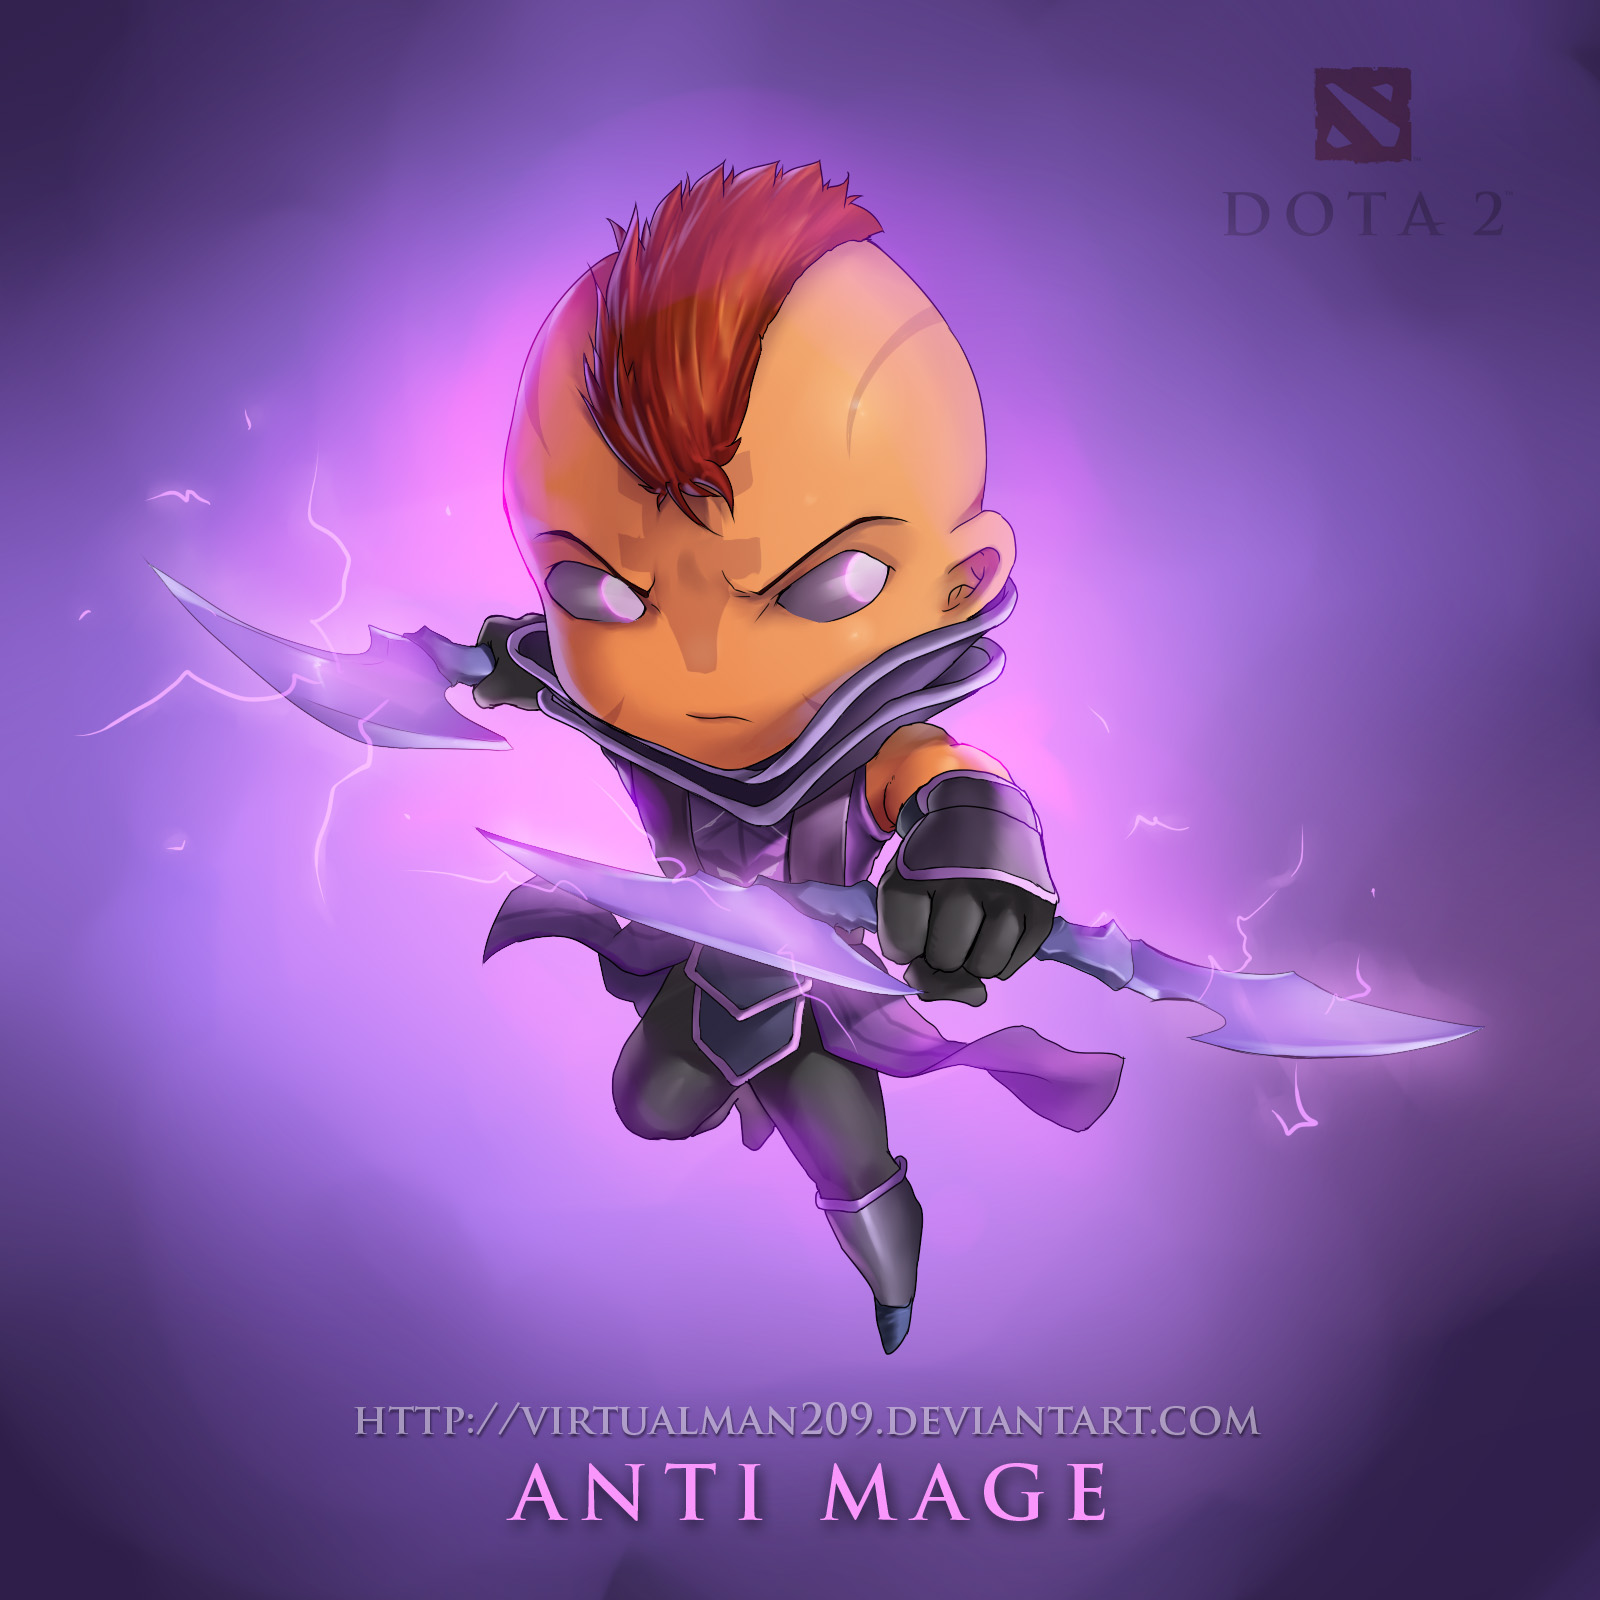 Anti mage wallpapers dota 2 hd wallpapers 5 graphictofu anti mage wallpapers dota 2 hd wallpapers 5 voltagebd Images